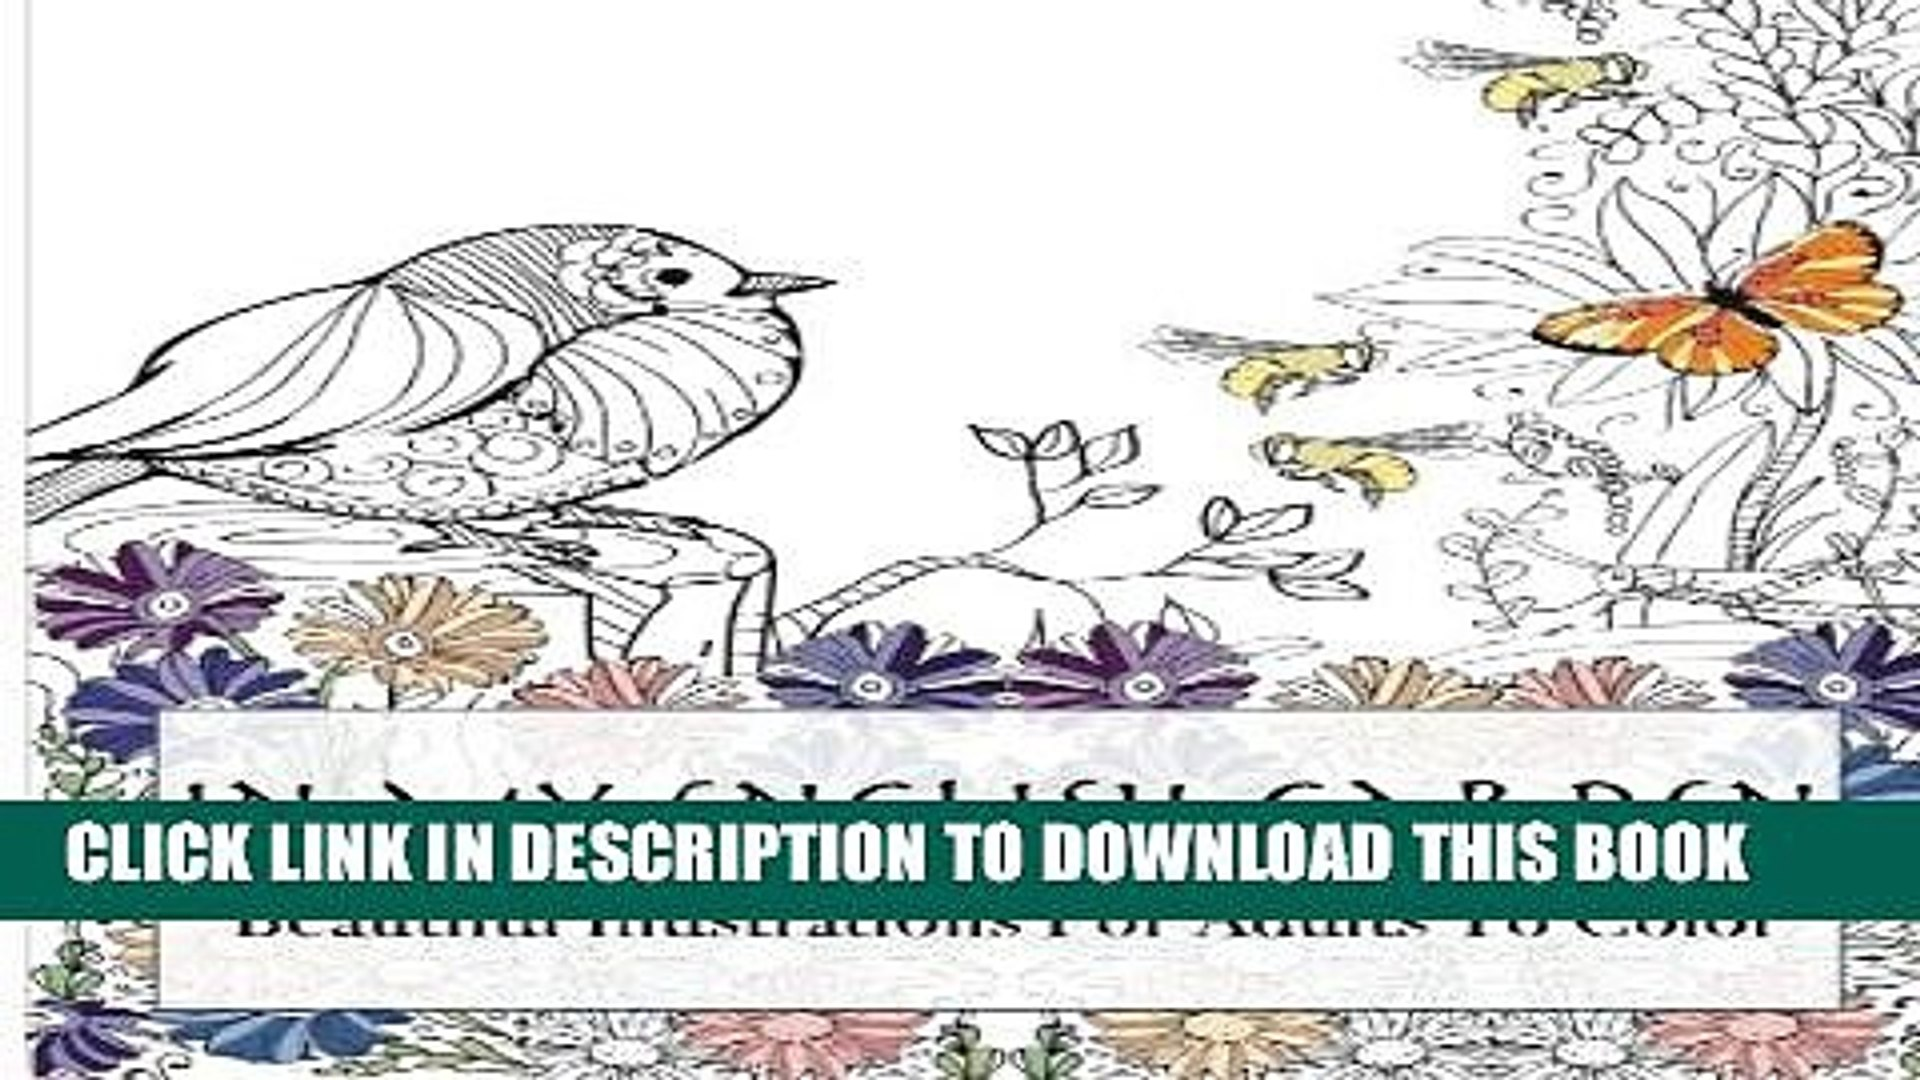 [PDF] In My English Garden: Beautiful Illustrations For Adults To Color (Beautiful Adult Coloring